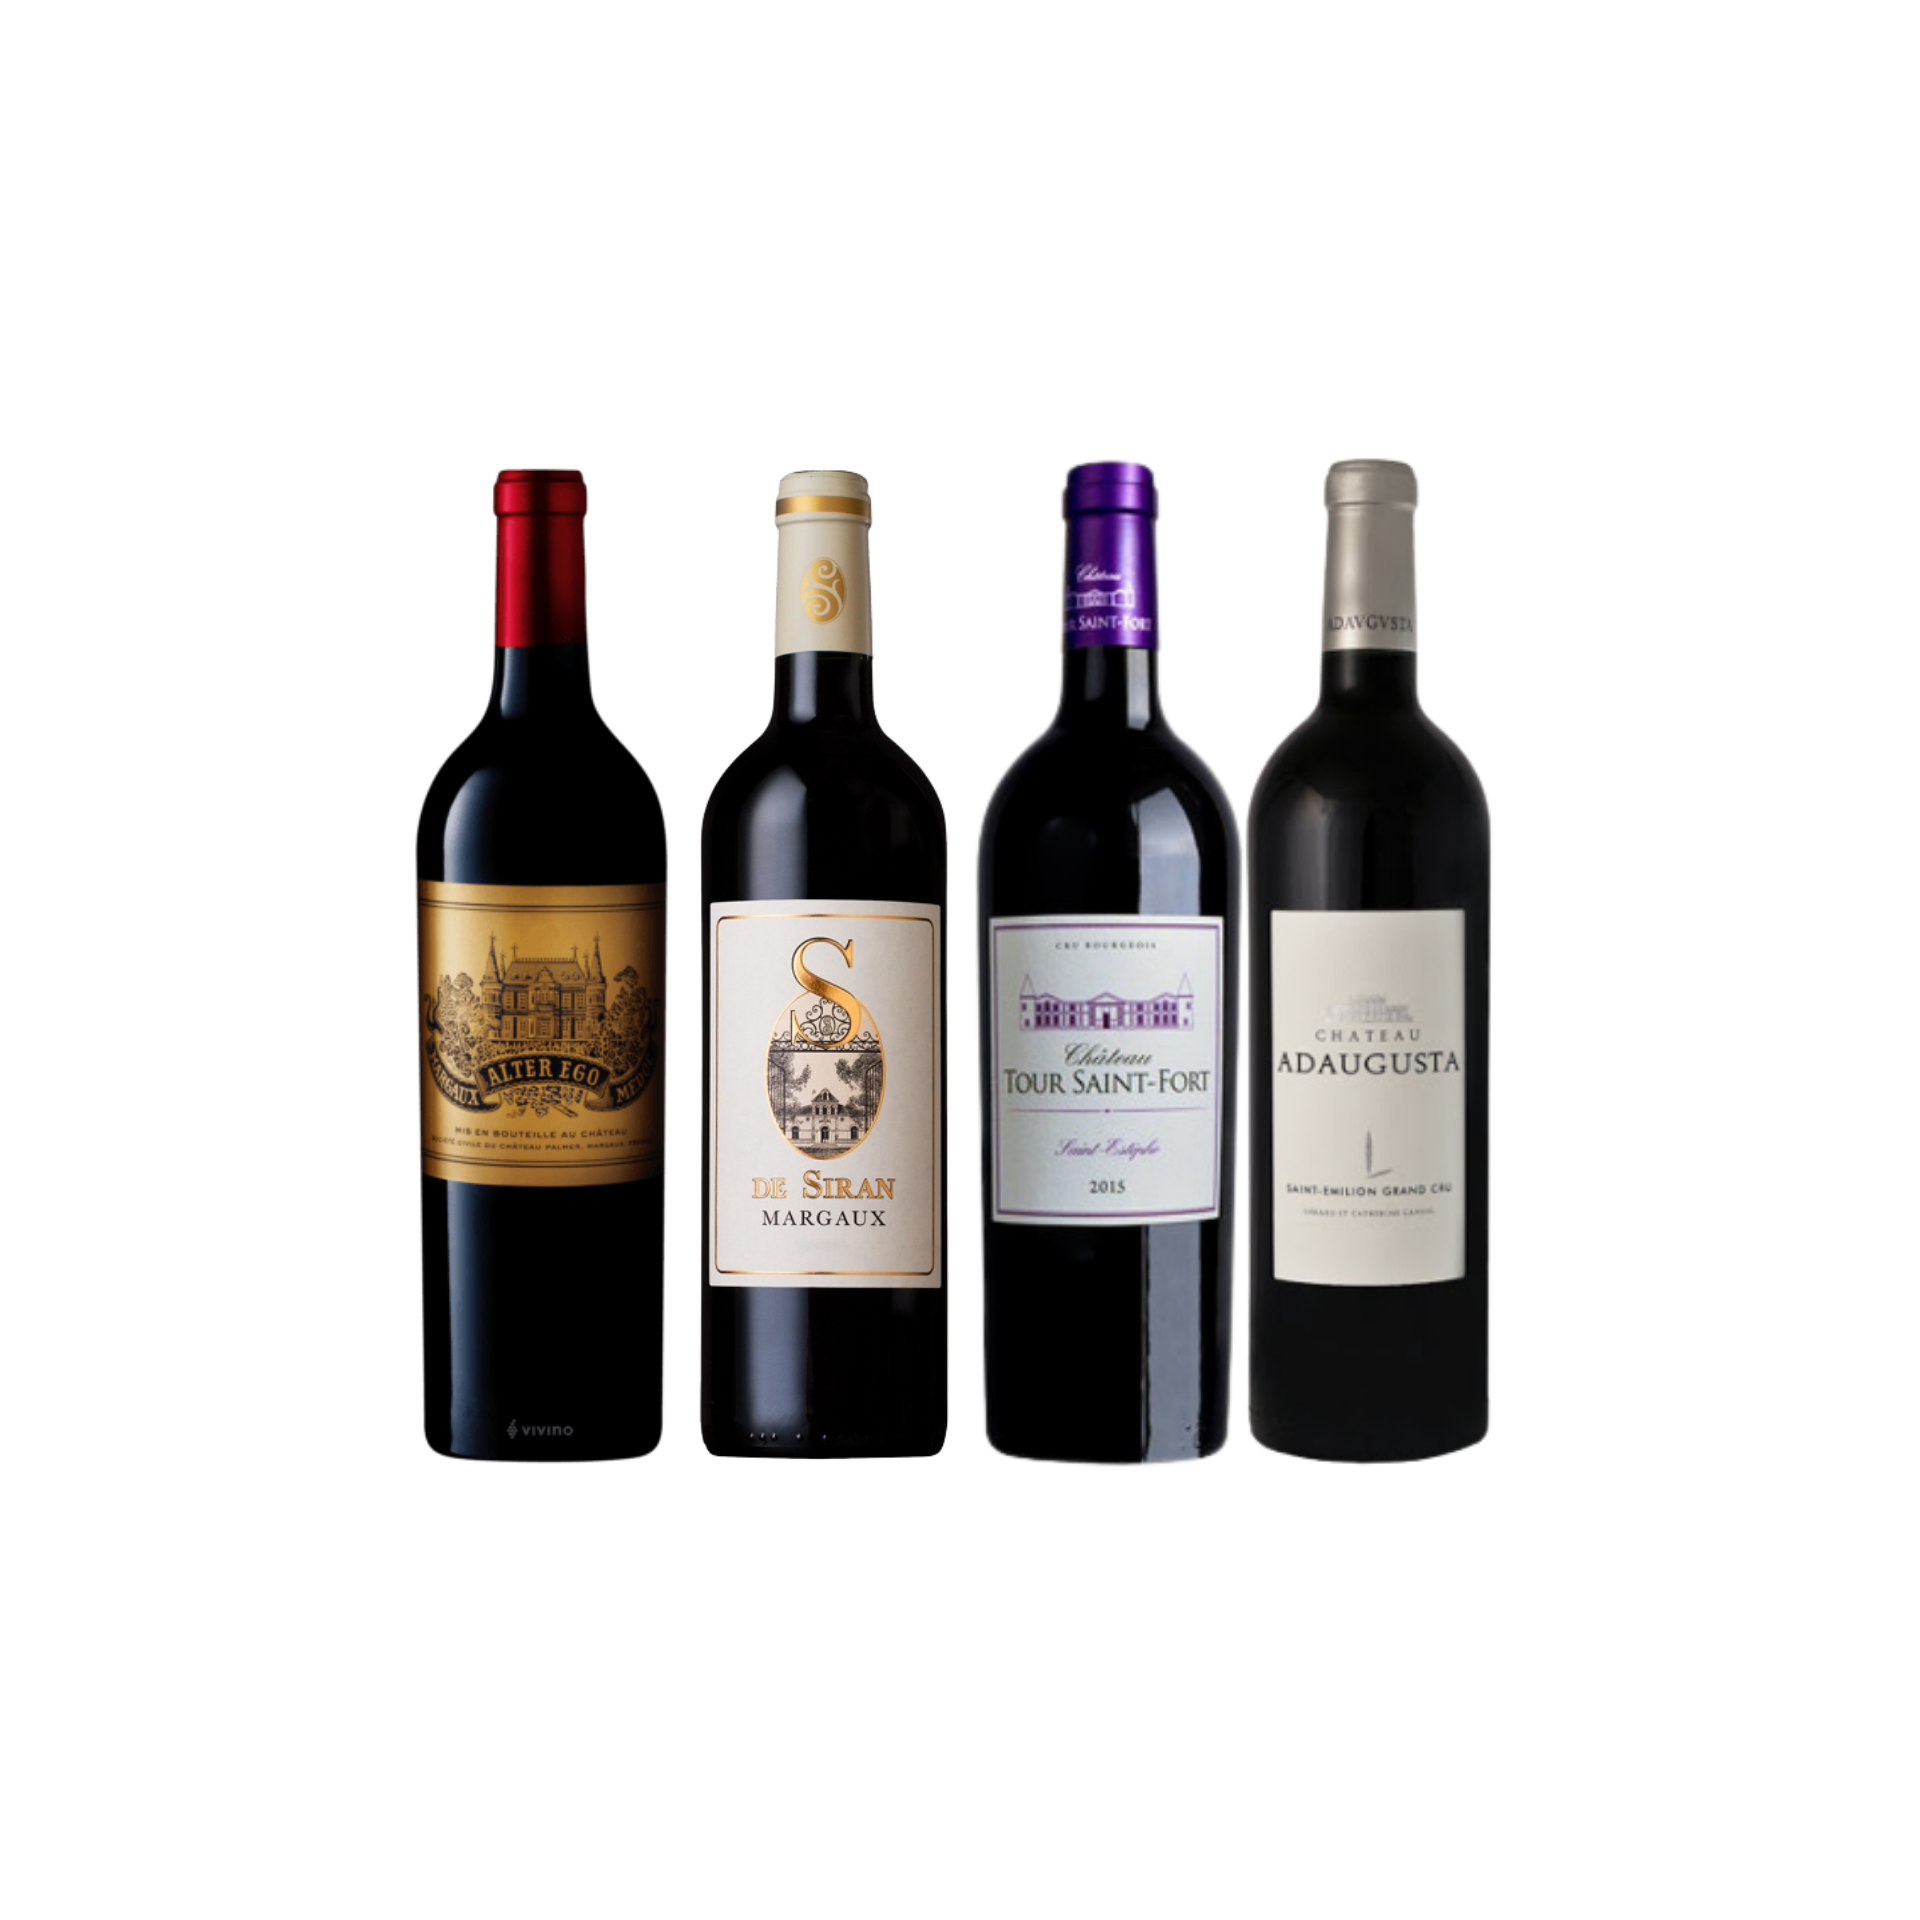 Enjoy 3 Bottles of French Red Wine From Margaux and Saint-Estephe at Only $199 And Top-Up $48 for A Bottle of Adaugusta Saint Emilion Worth $68